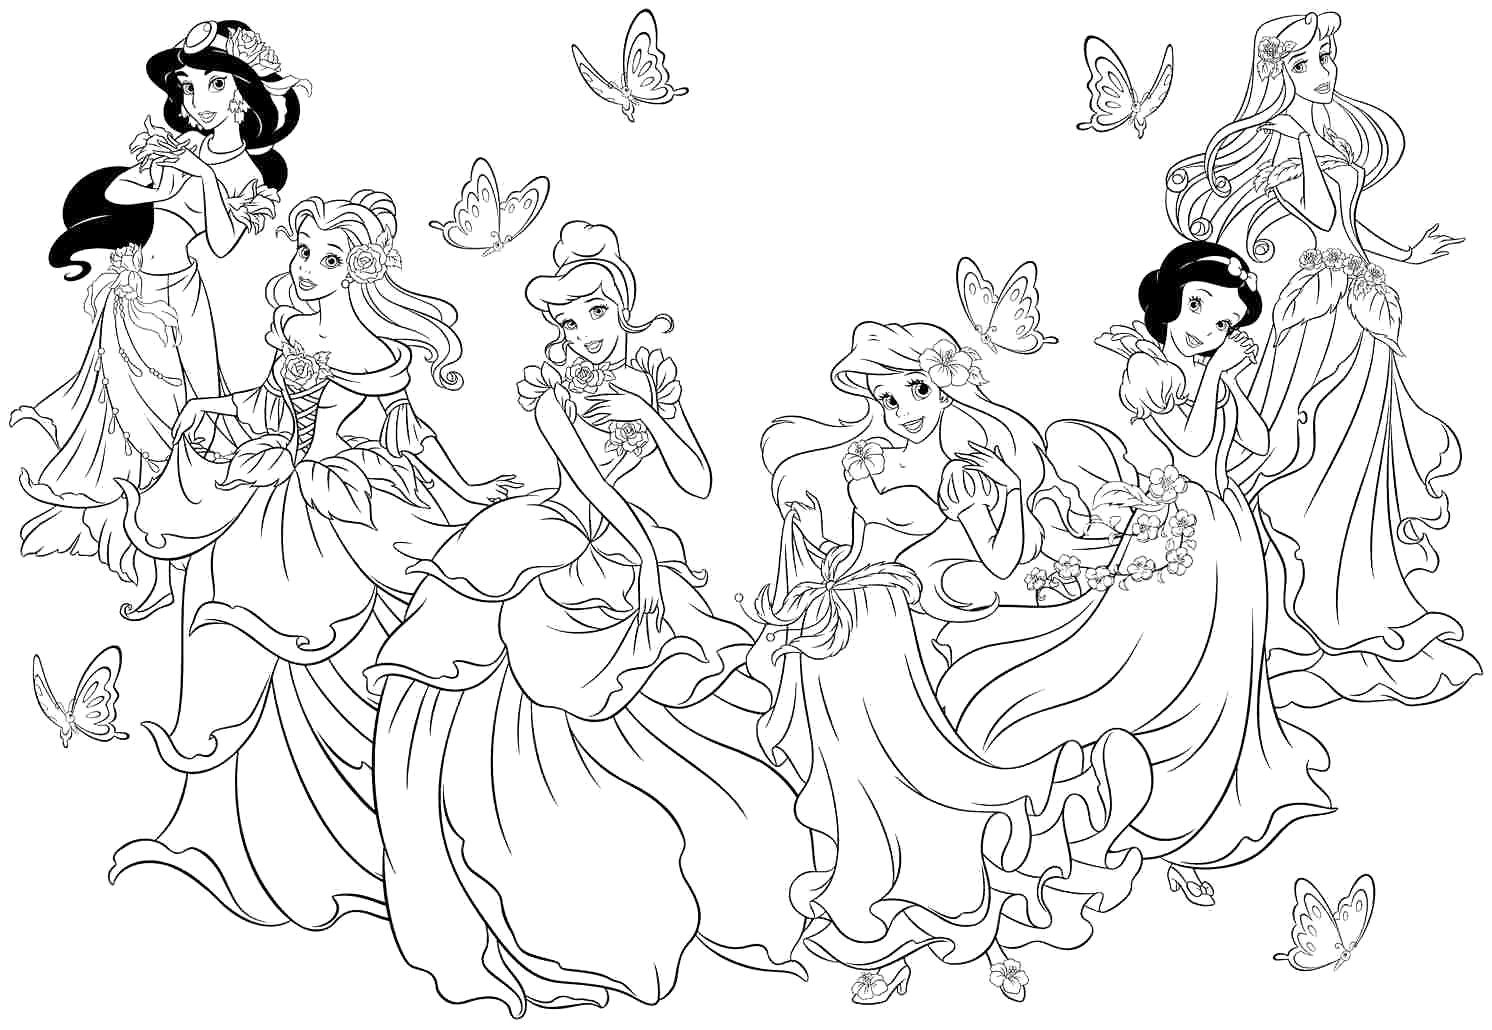 Valentine Coloring Pages Disney Disney Princess Coloring Pages Princess Coloring Sheets Disney Coloring Pages